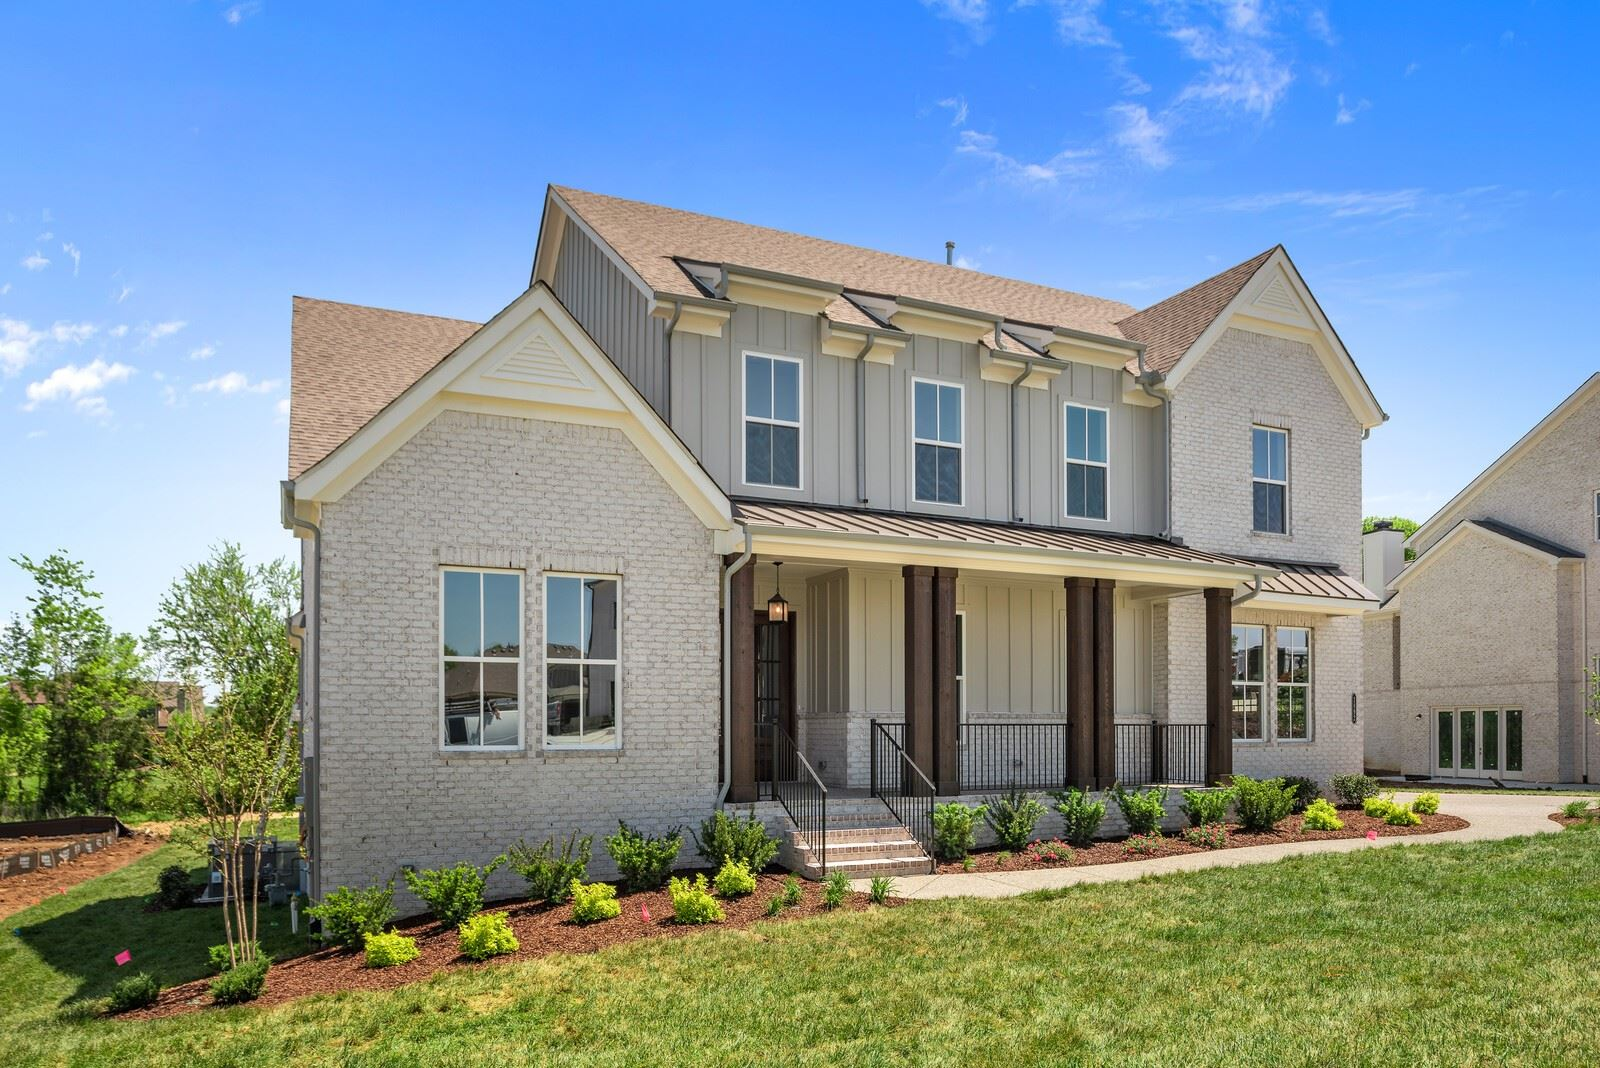 Photo of 1881 Traditions Cir, Brentwood, TN 37027 (MLS # 2261812)